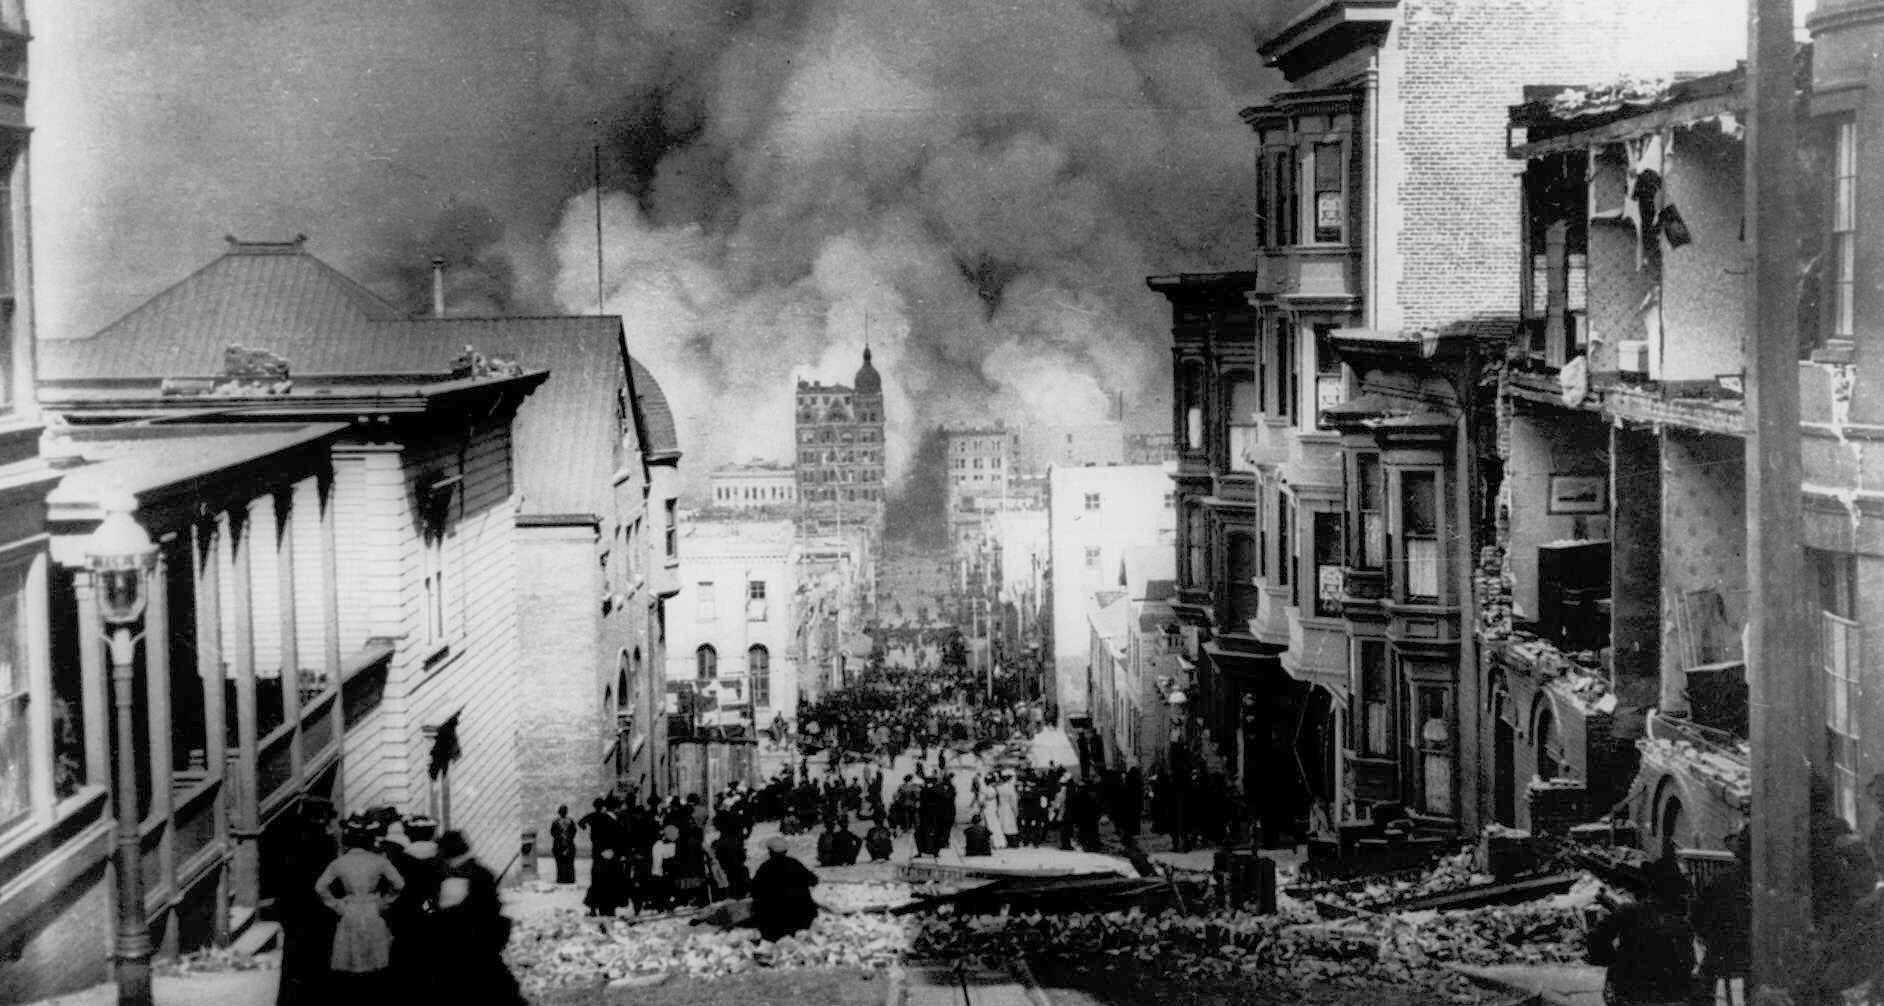 110 years ago: Images from San Francisco's devastating 1906 earthquake - LA Times